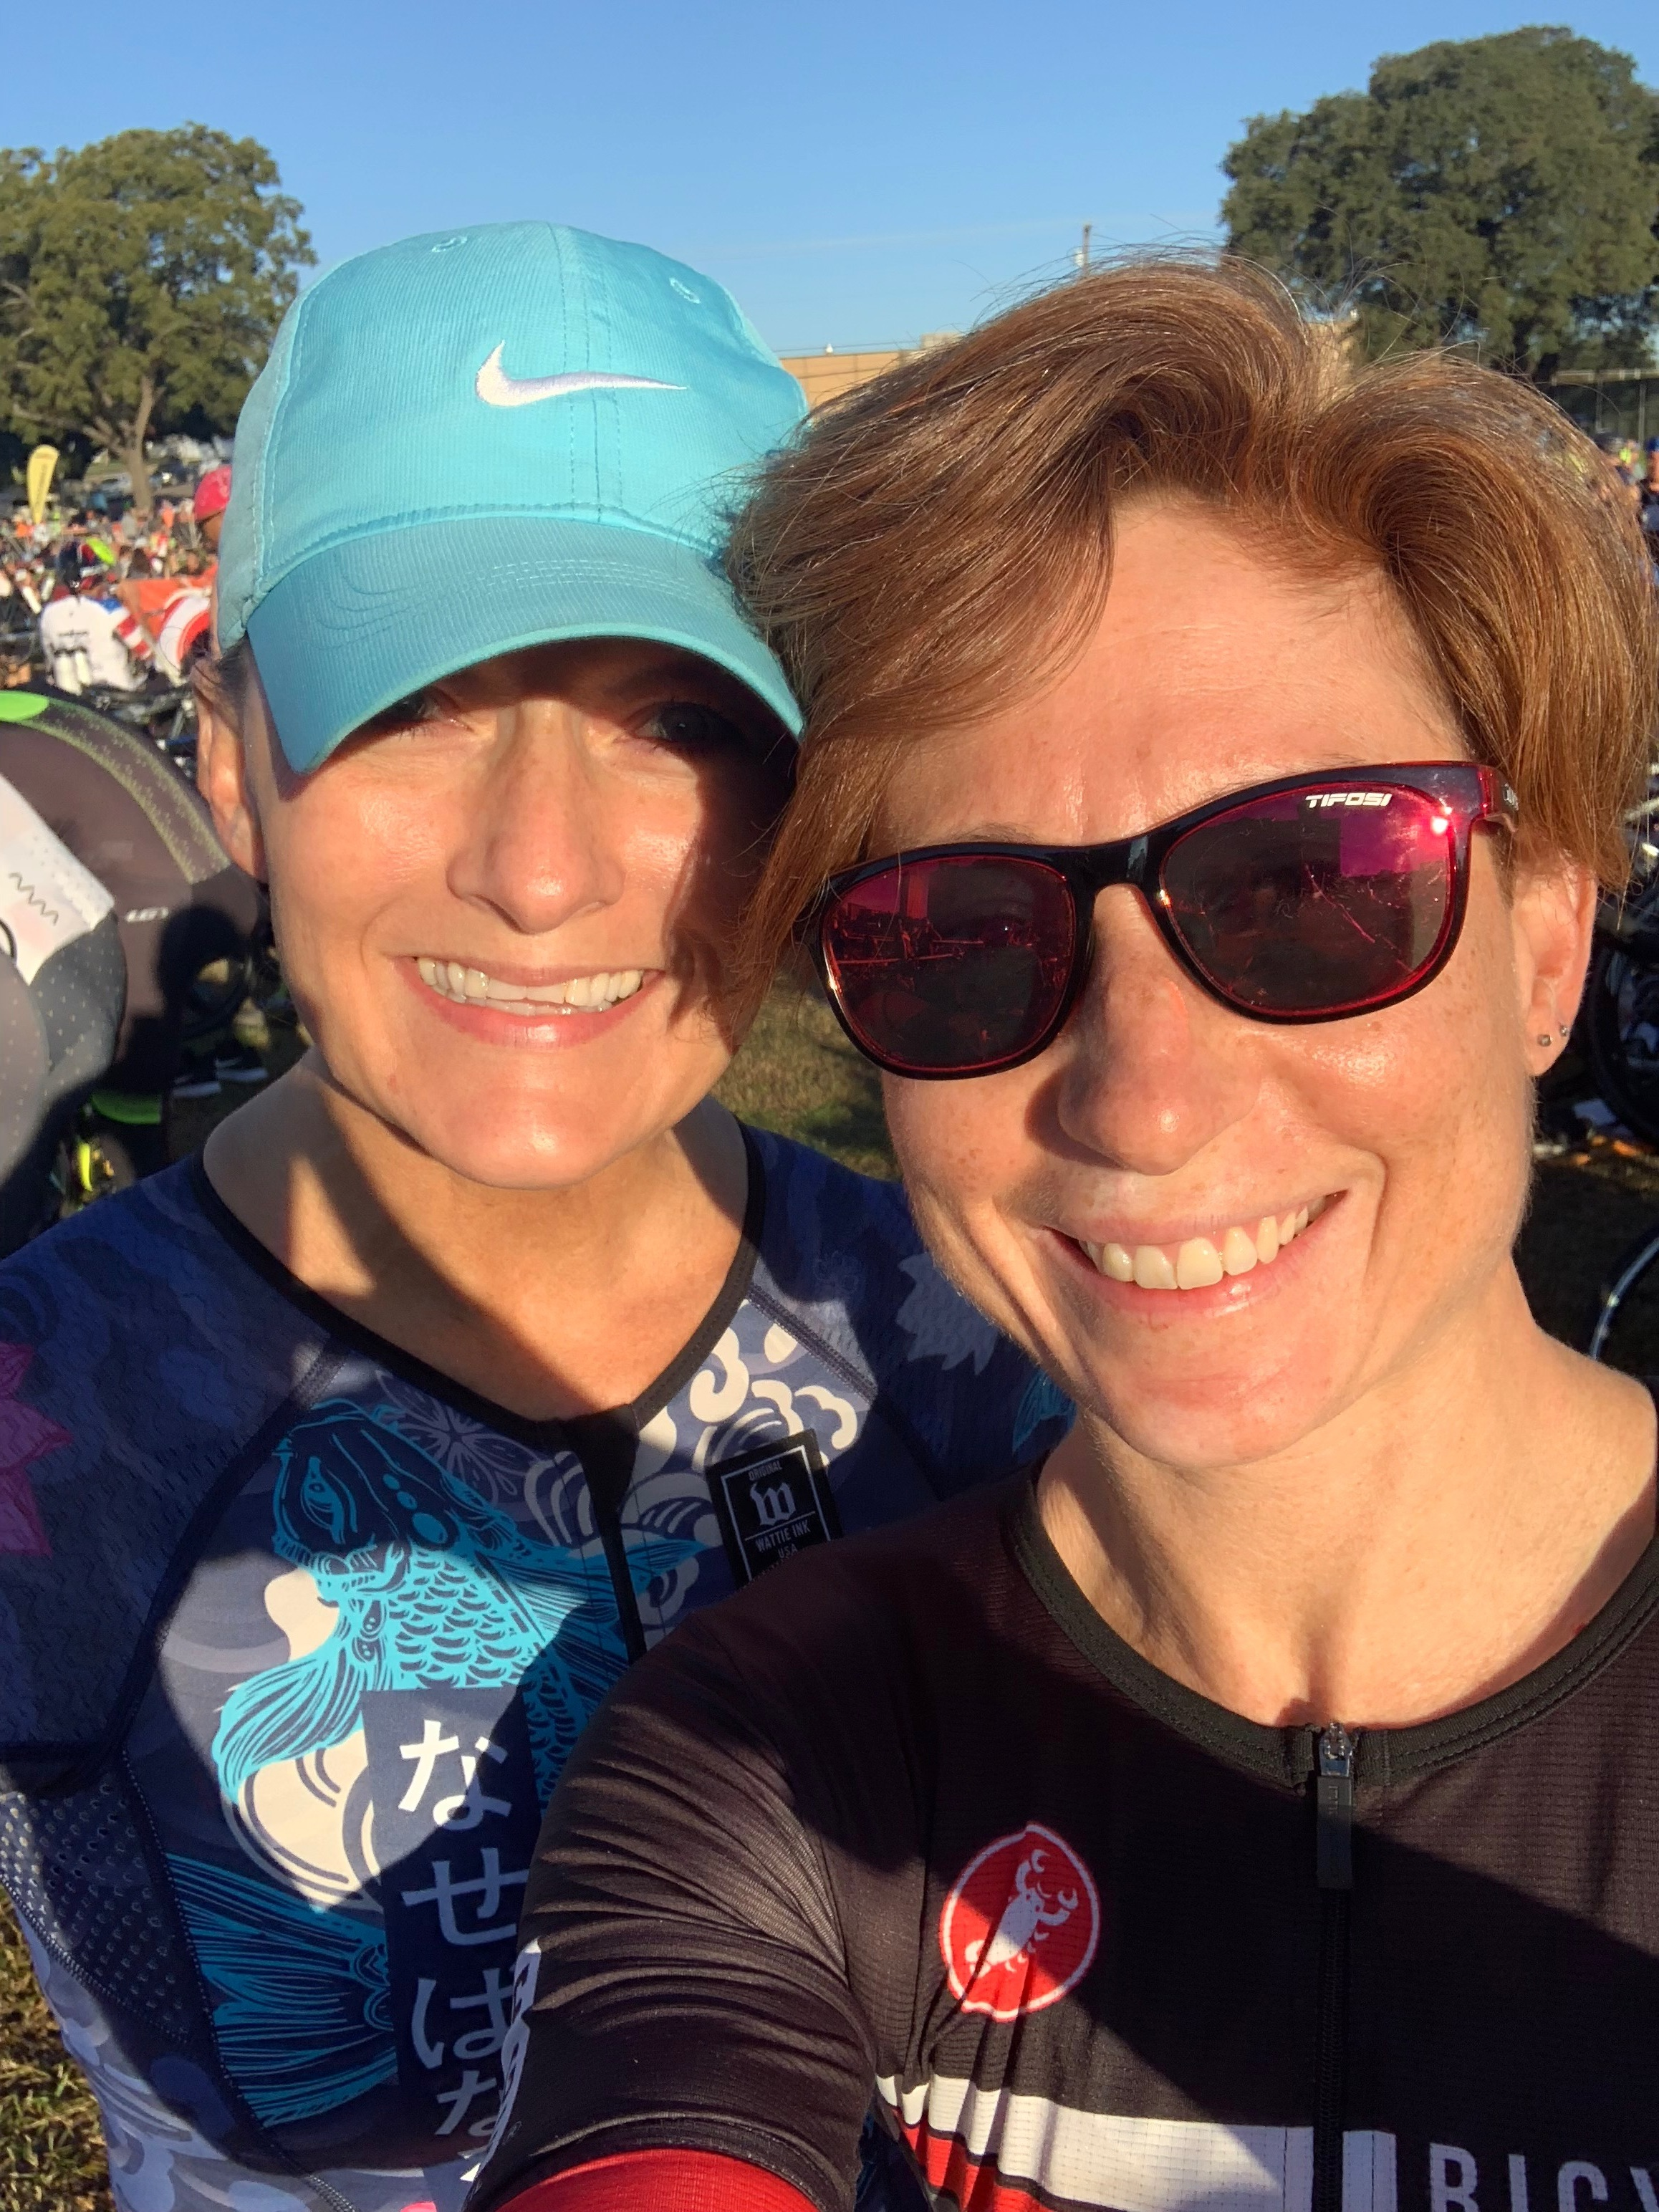 A quick pre-race selfie with Debi, who crushed her first Ironman 70.3. So proud of this badass momma!